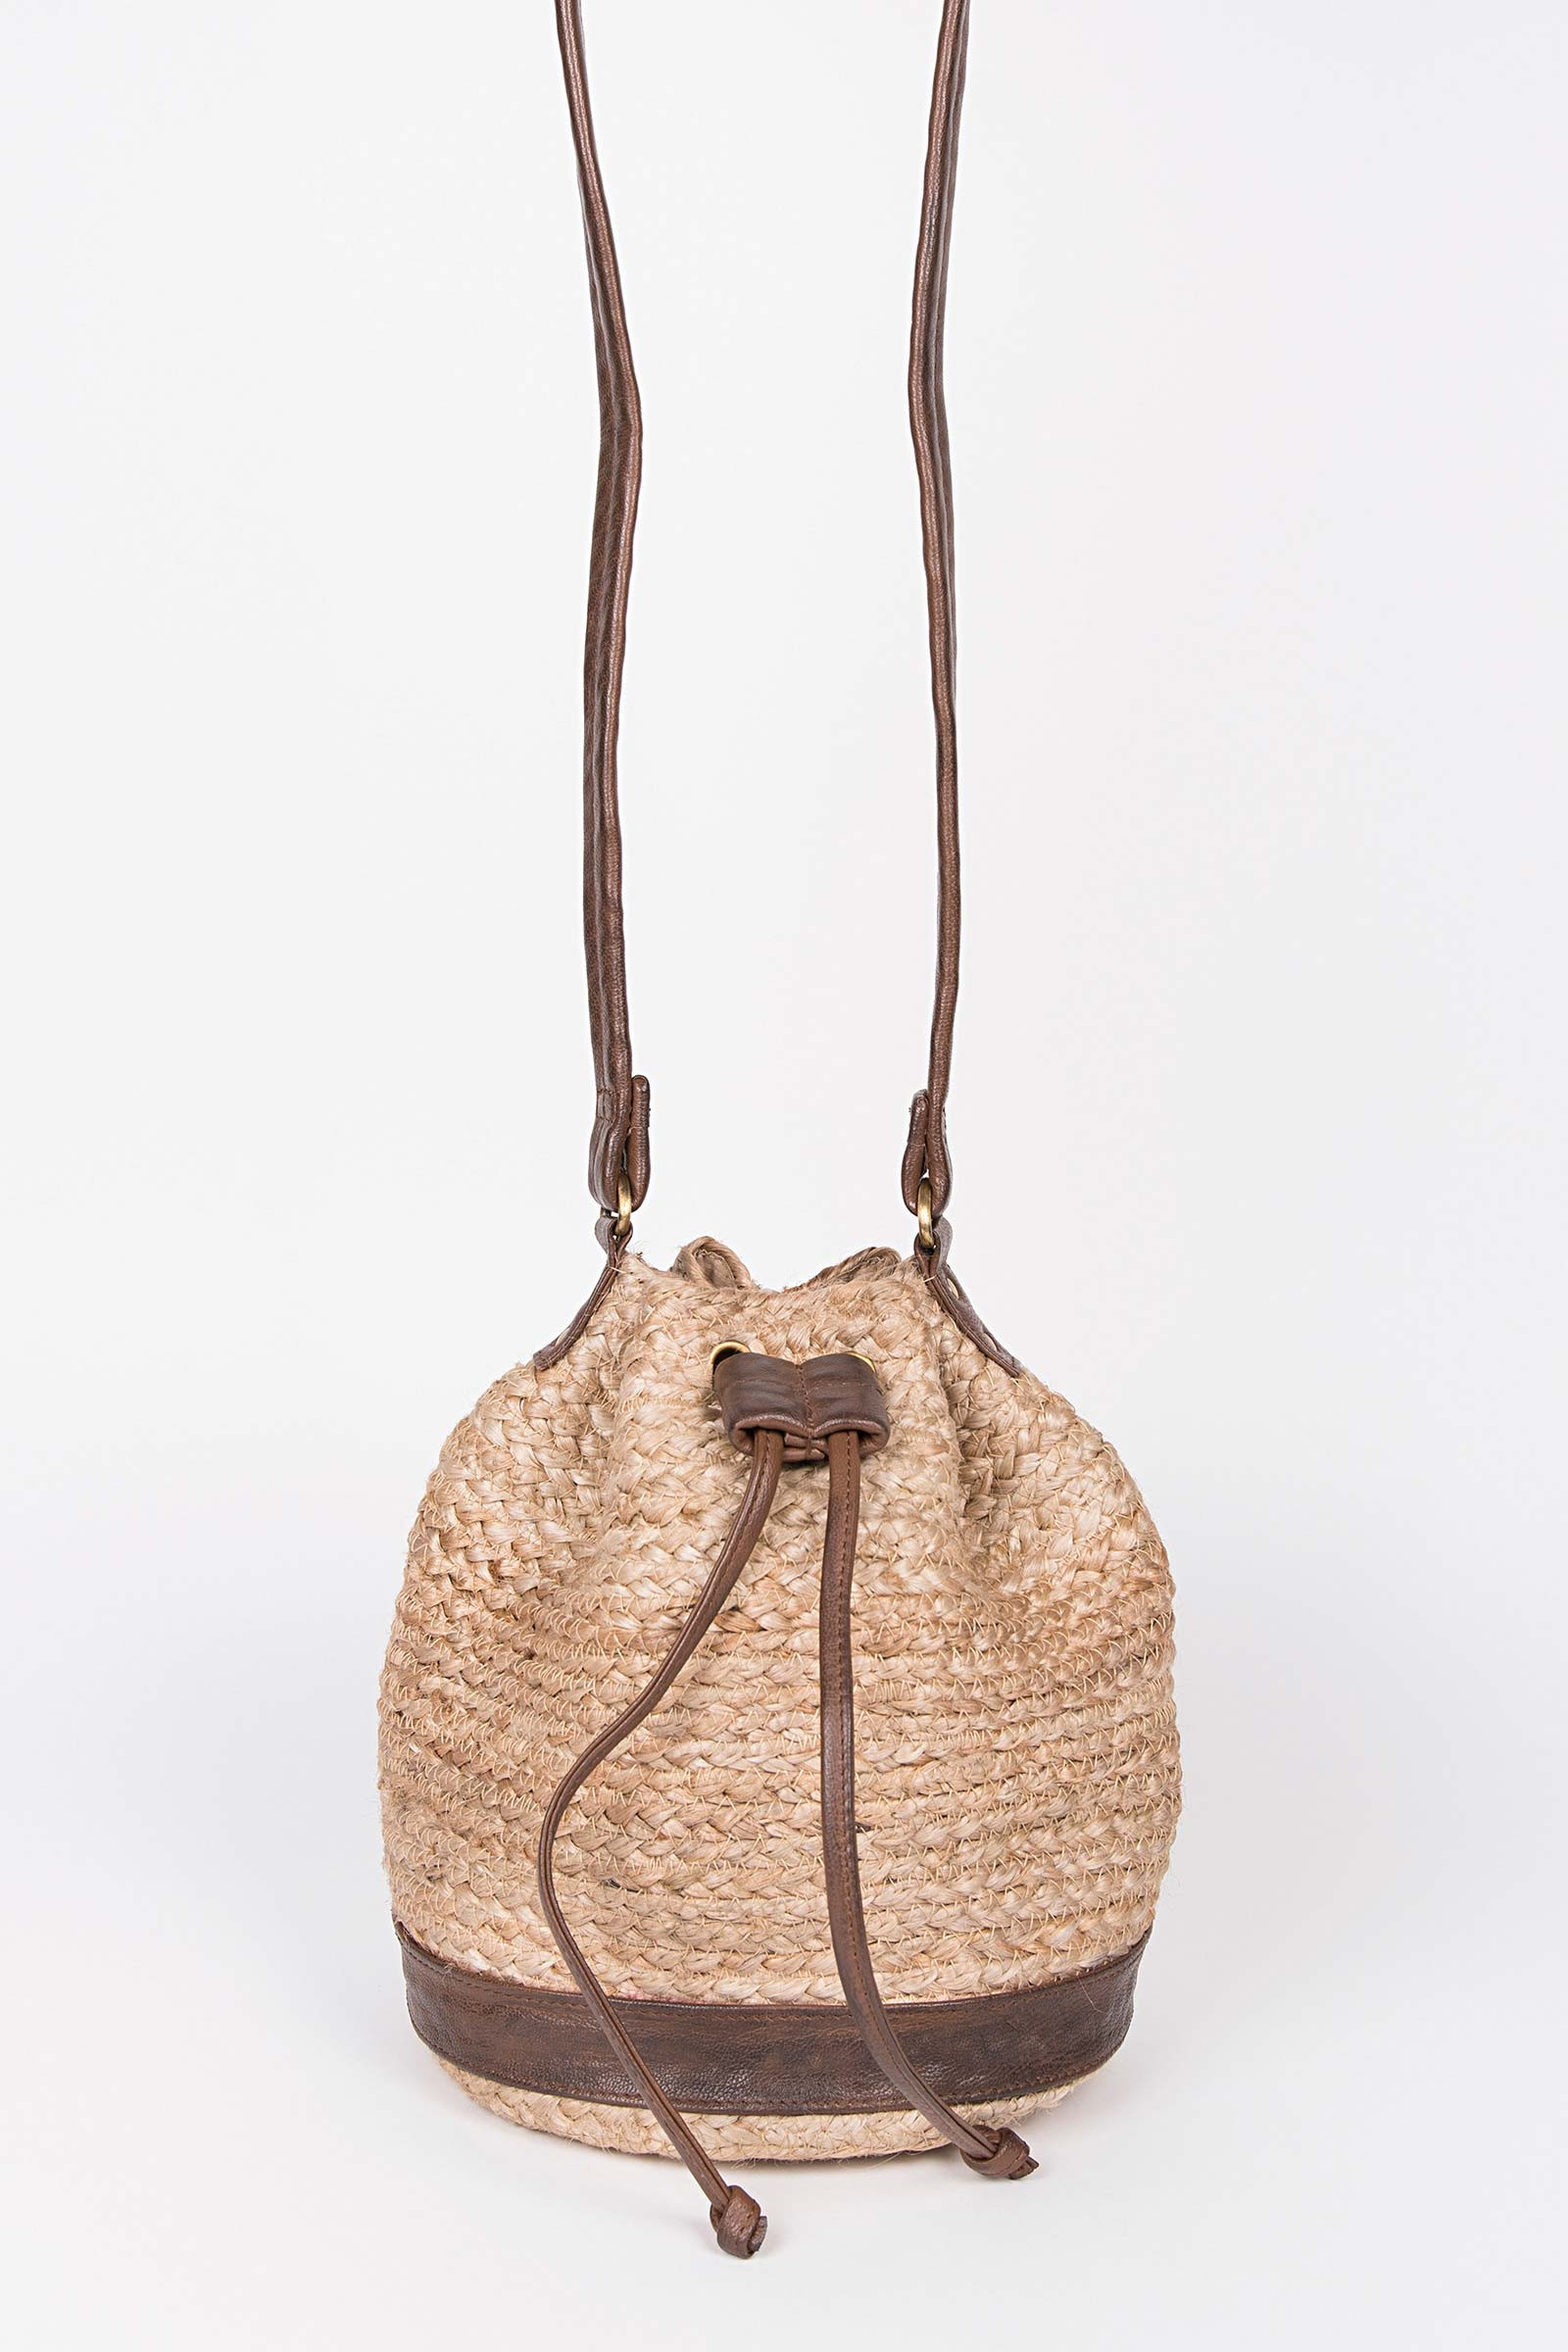 Pouch Style Wicker Bag  cover